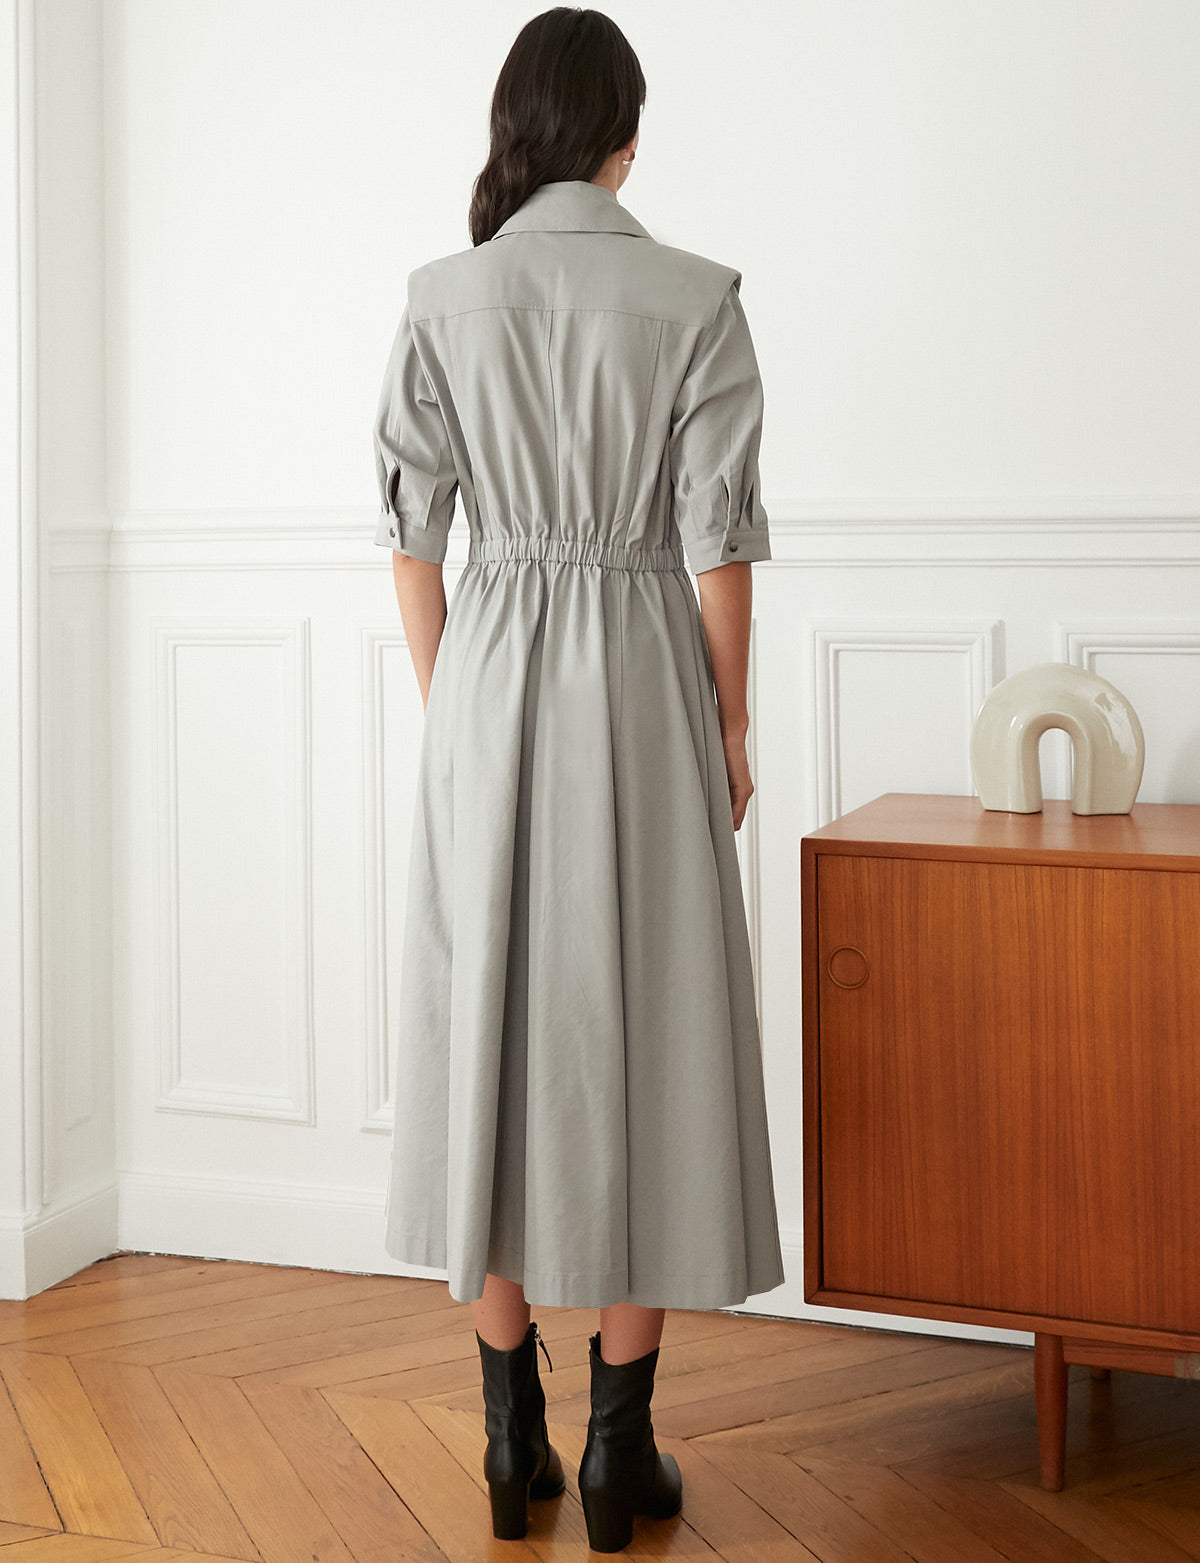 Shoulder Pad Trench Dress